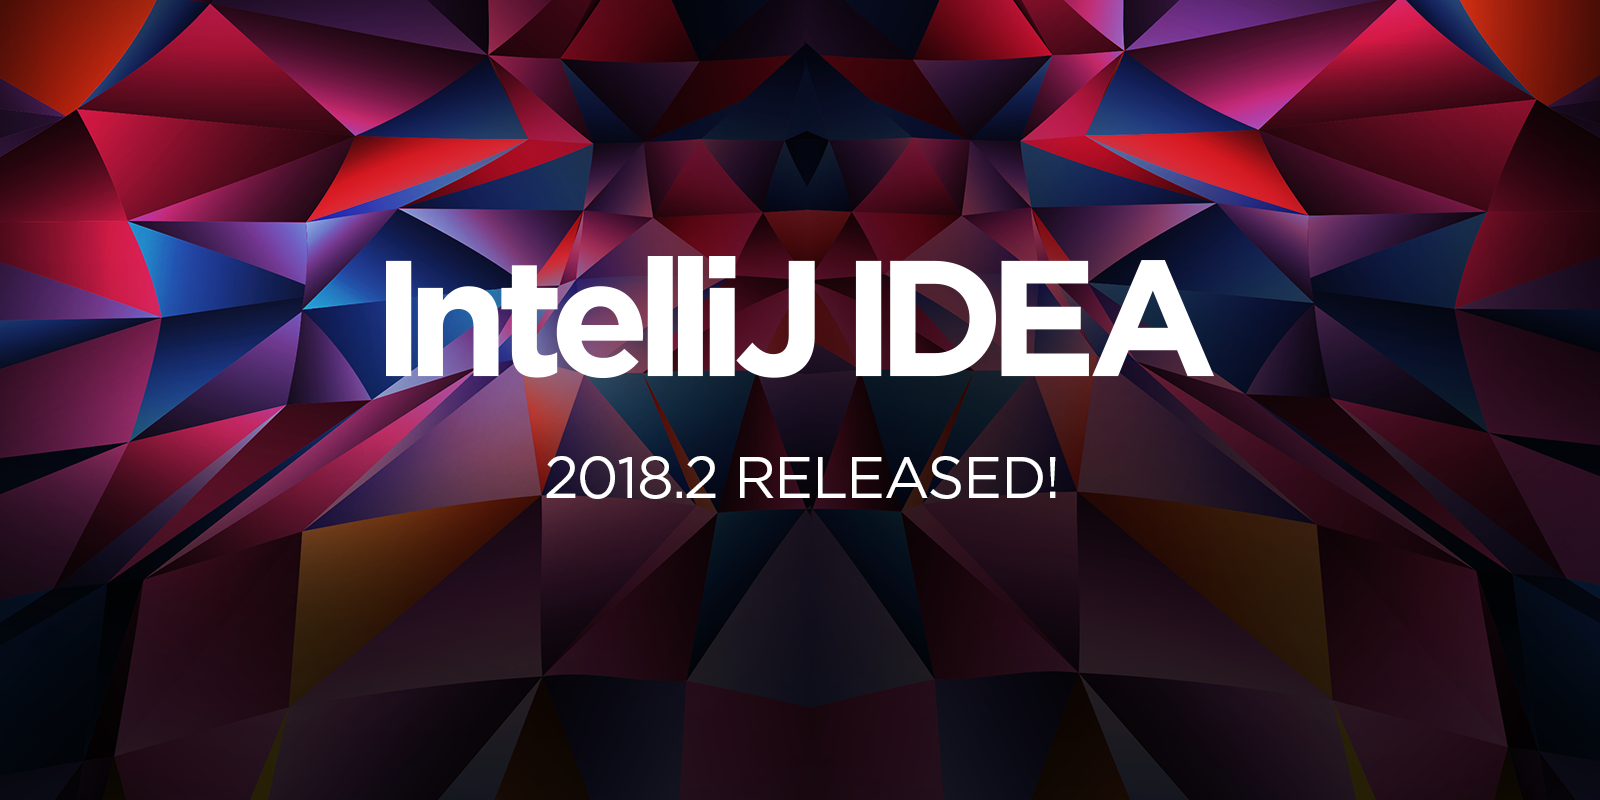 IntelliJ IDEA 2018.2